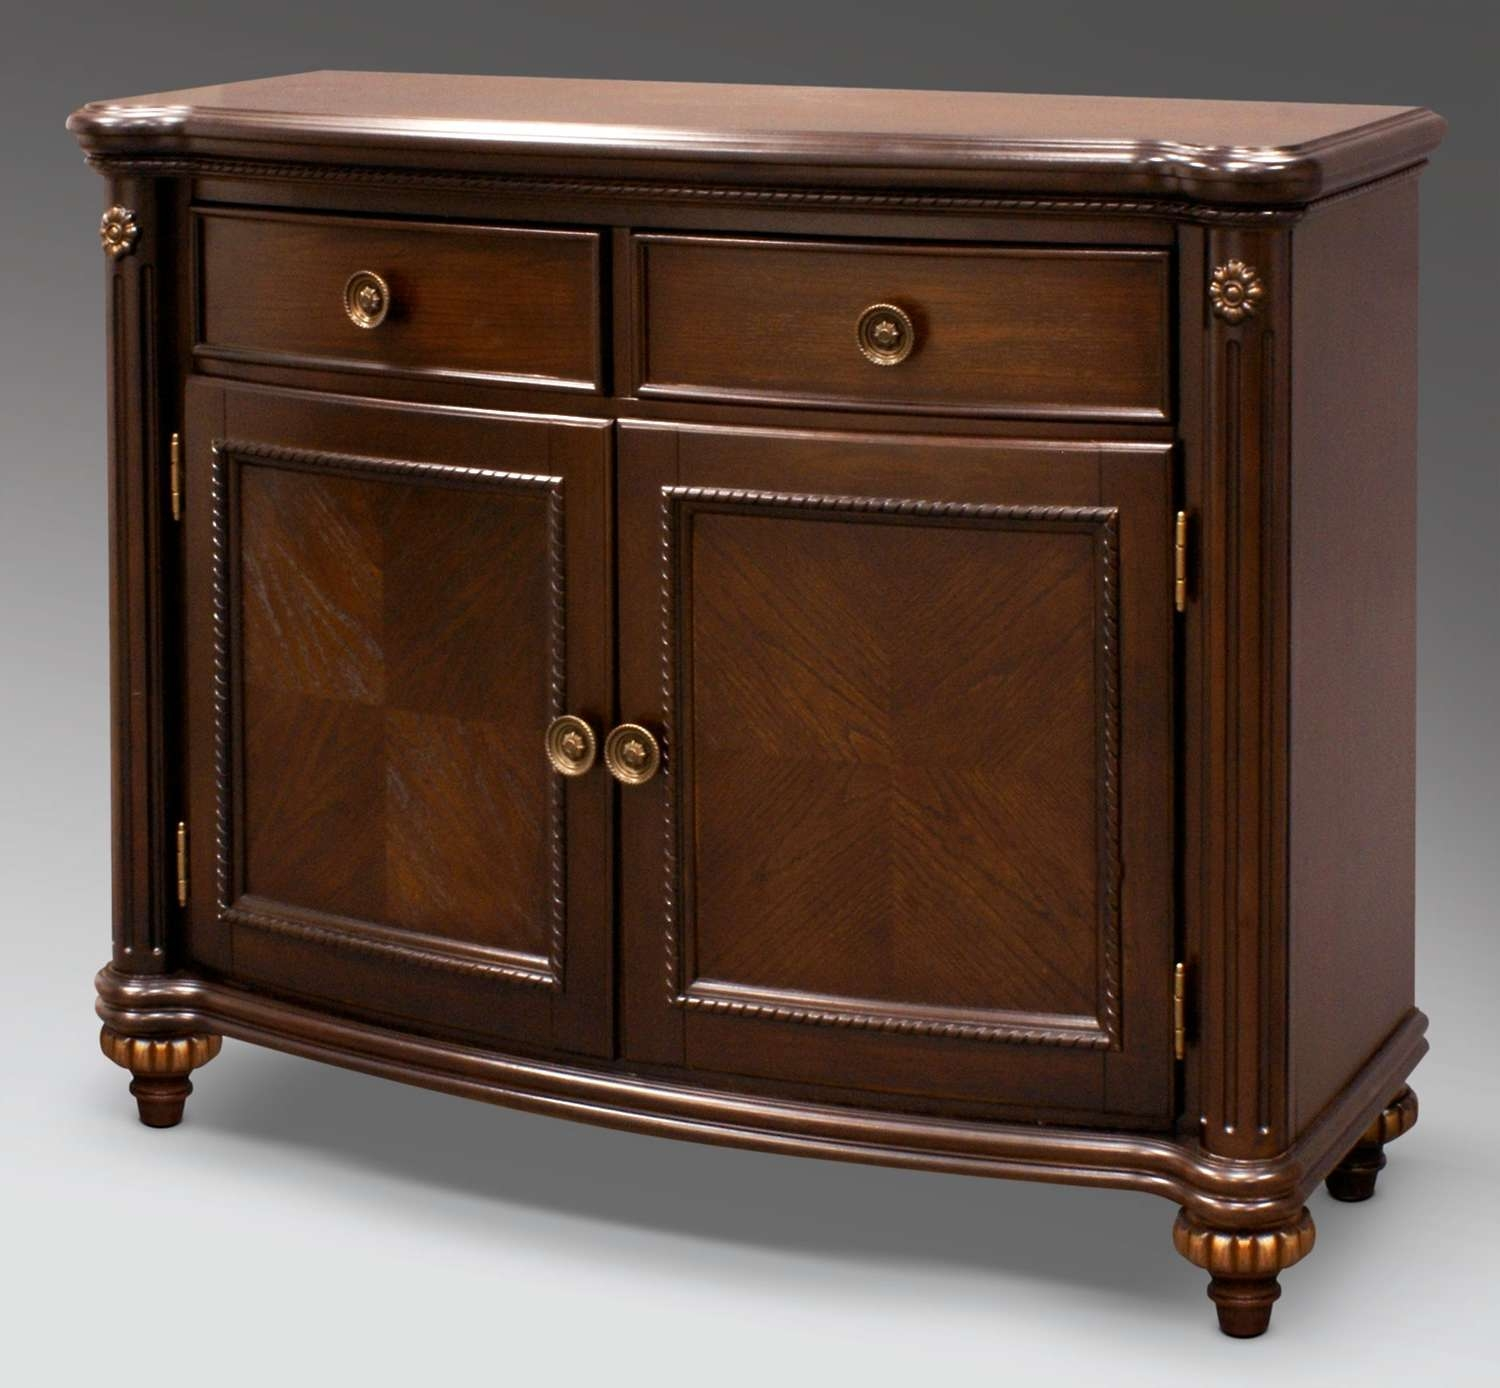 Dining Room Servers Buffet Furniture Pictures Cabinet Trends And Inside Dining Room With Sideboards (View 8 of 20)